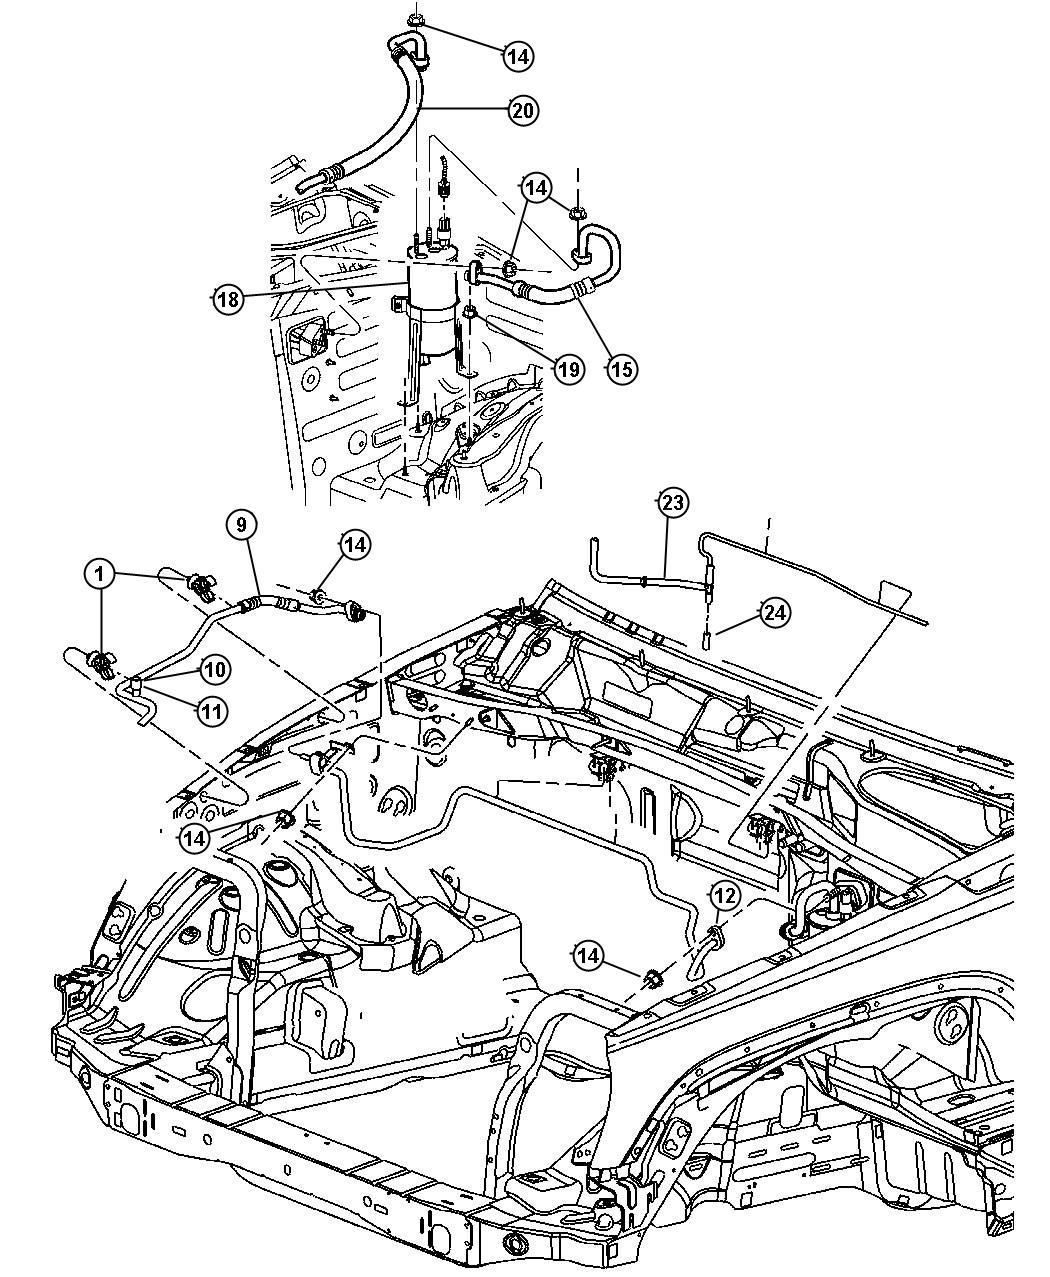 2003 Jeep Liberty Used for: HOSE AND VALVE. Vacuum. Air